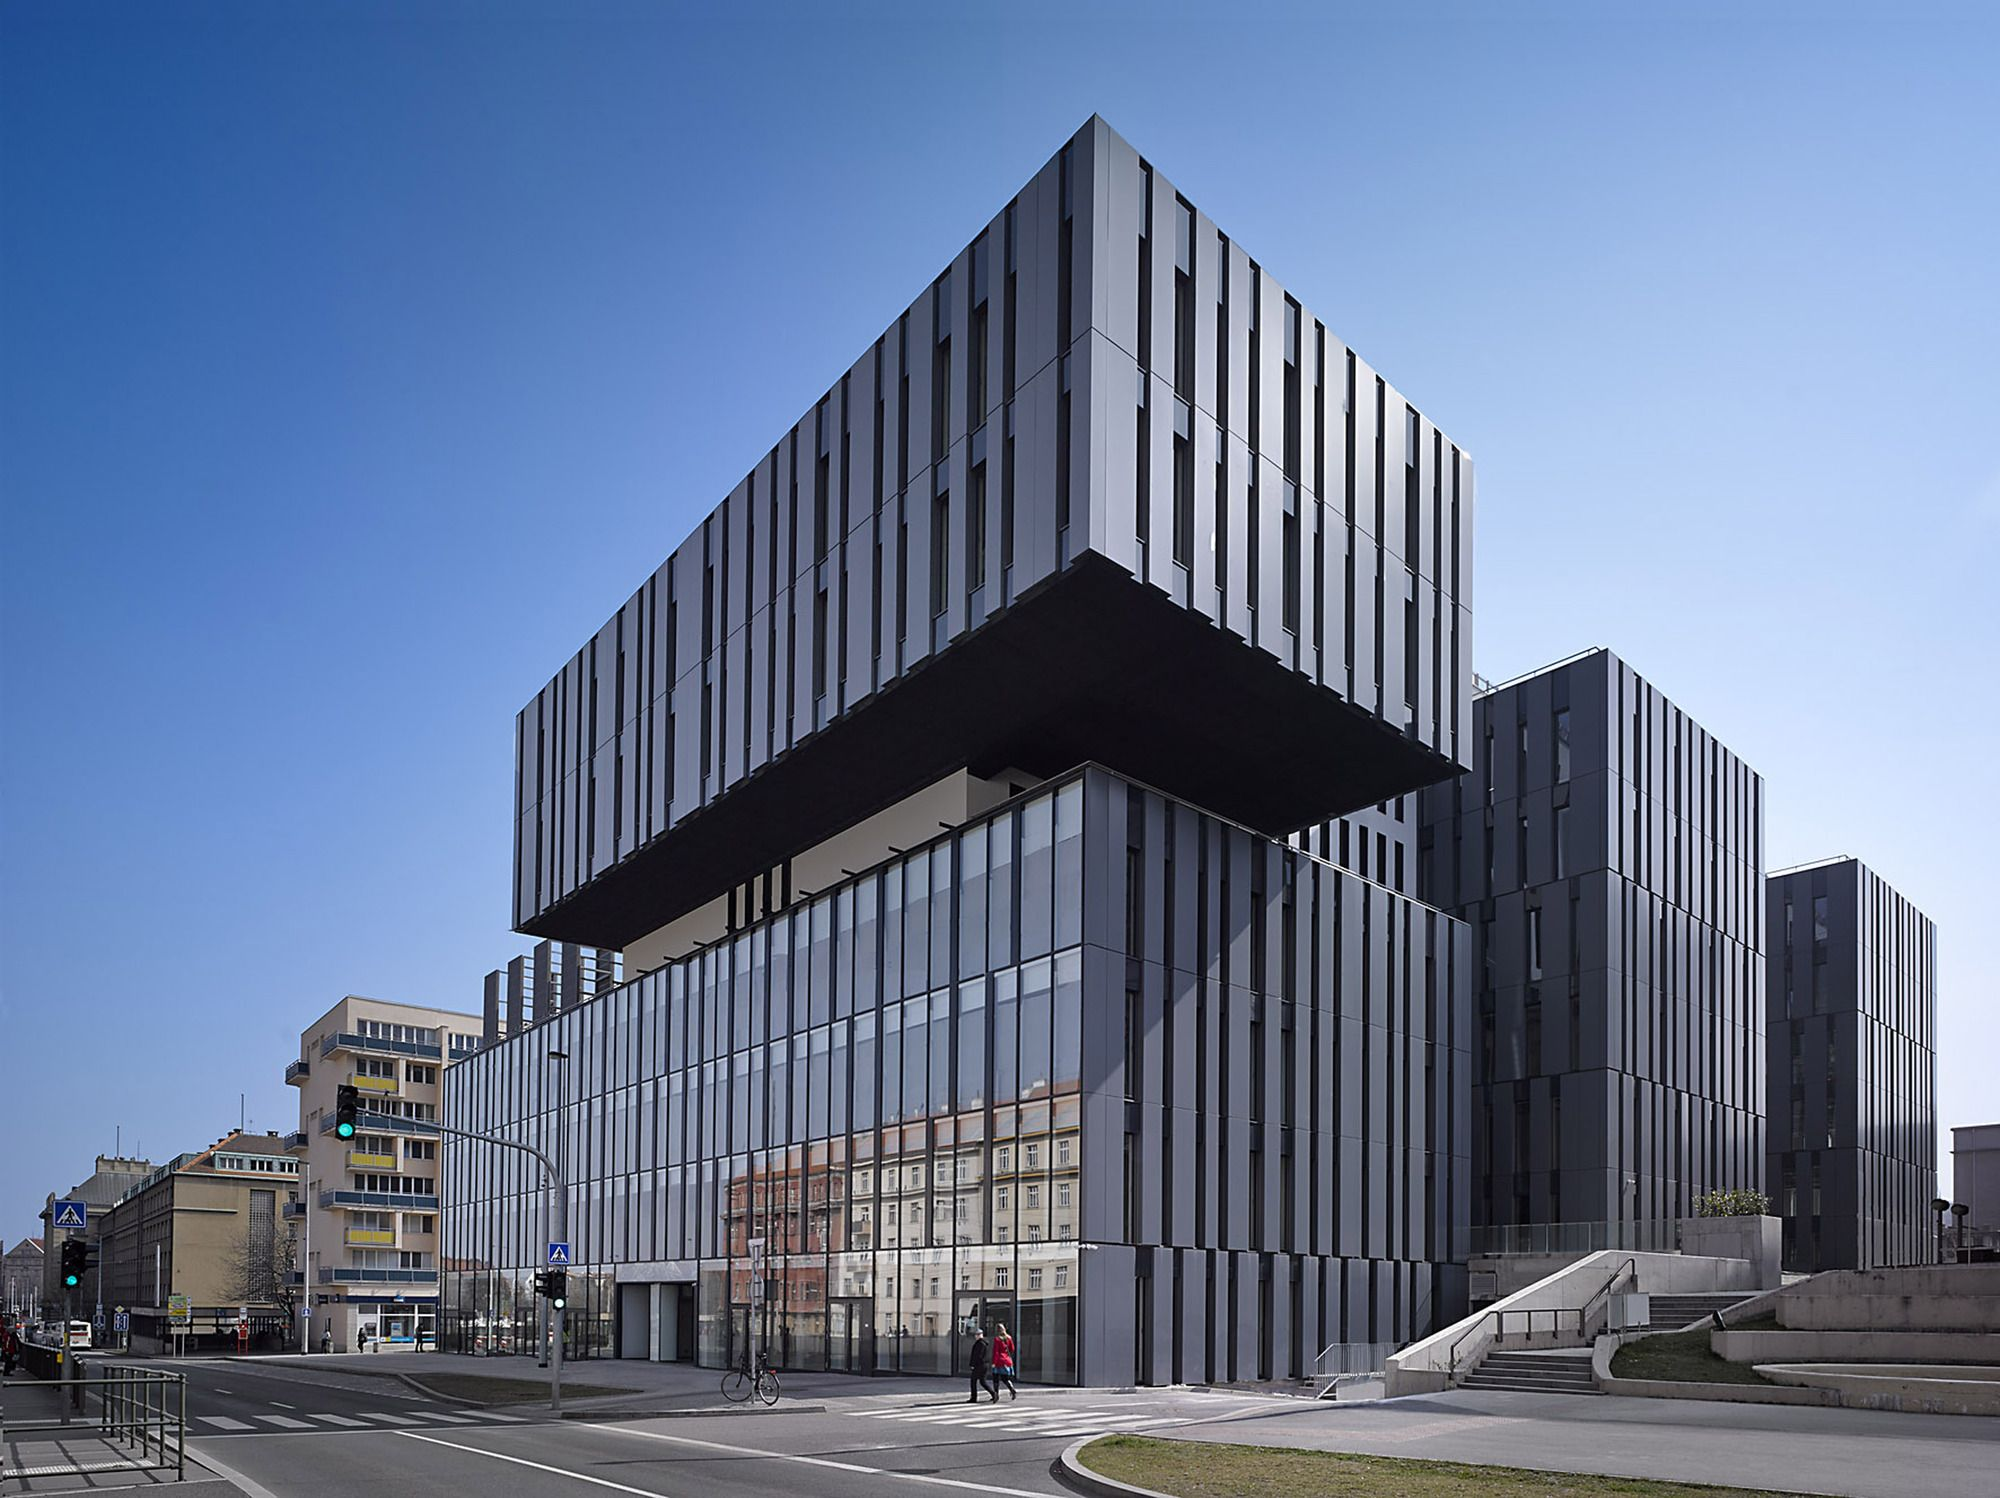 Image 1 Of 28 From Gallery Of The Blox X2f Dam Architekti Photograph By Filip Slapal Architecture Office Building Architecture Facade Architecture